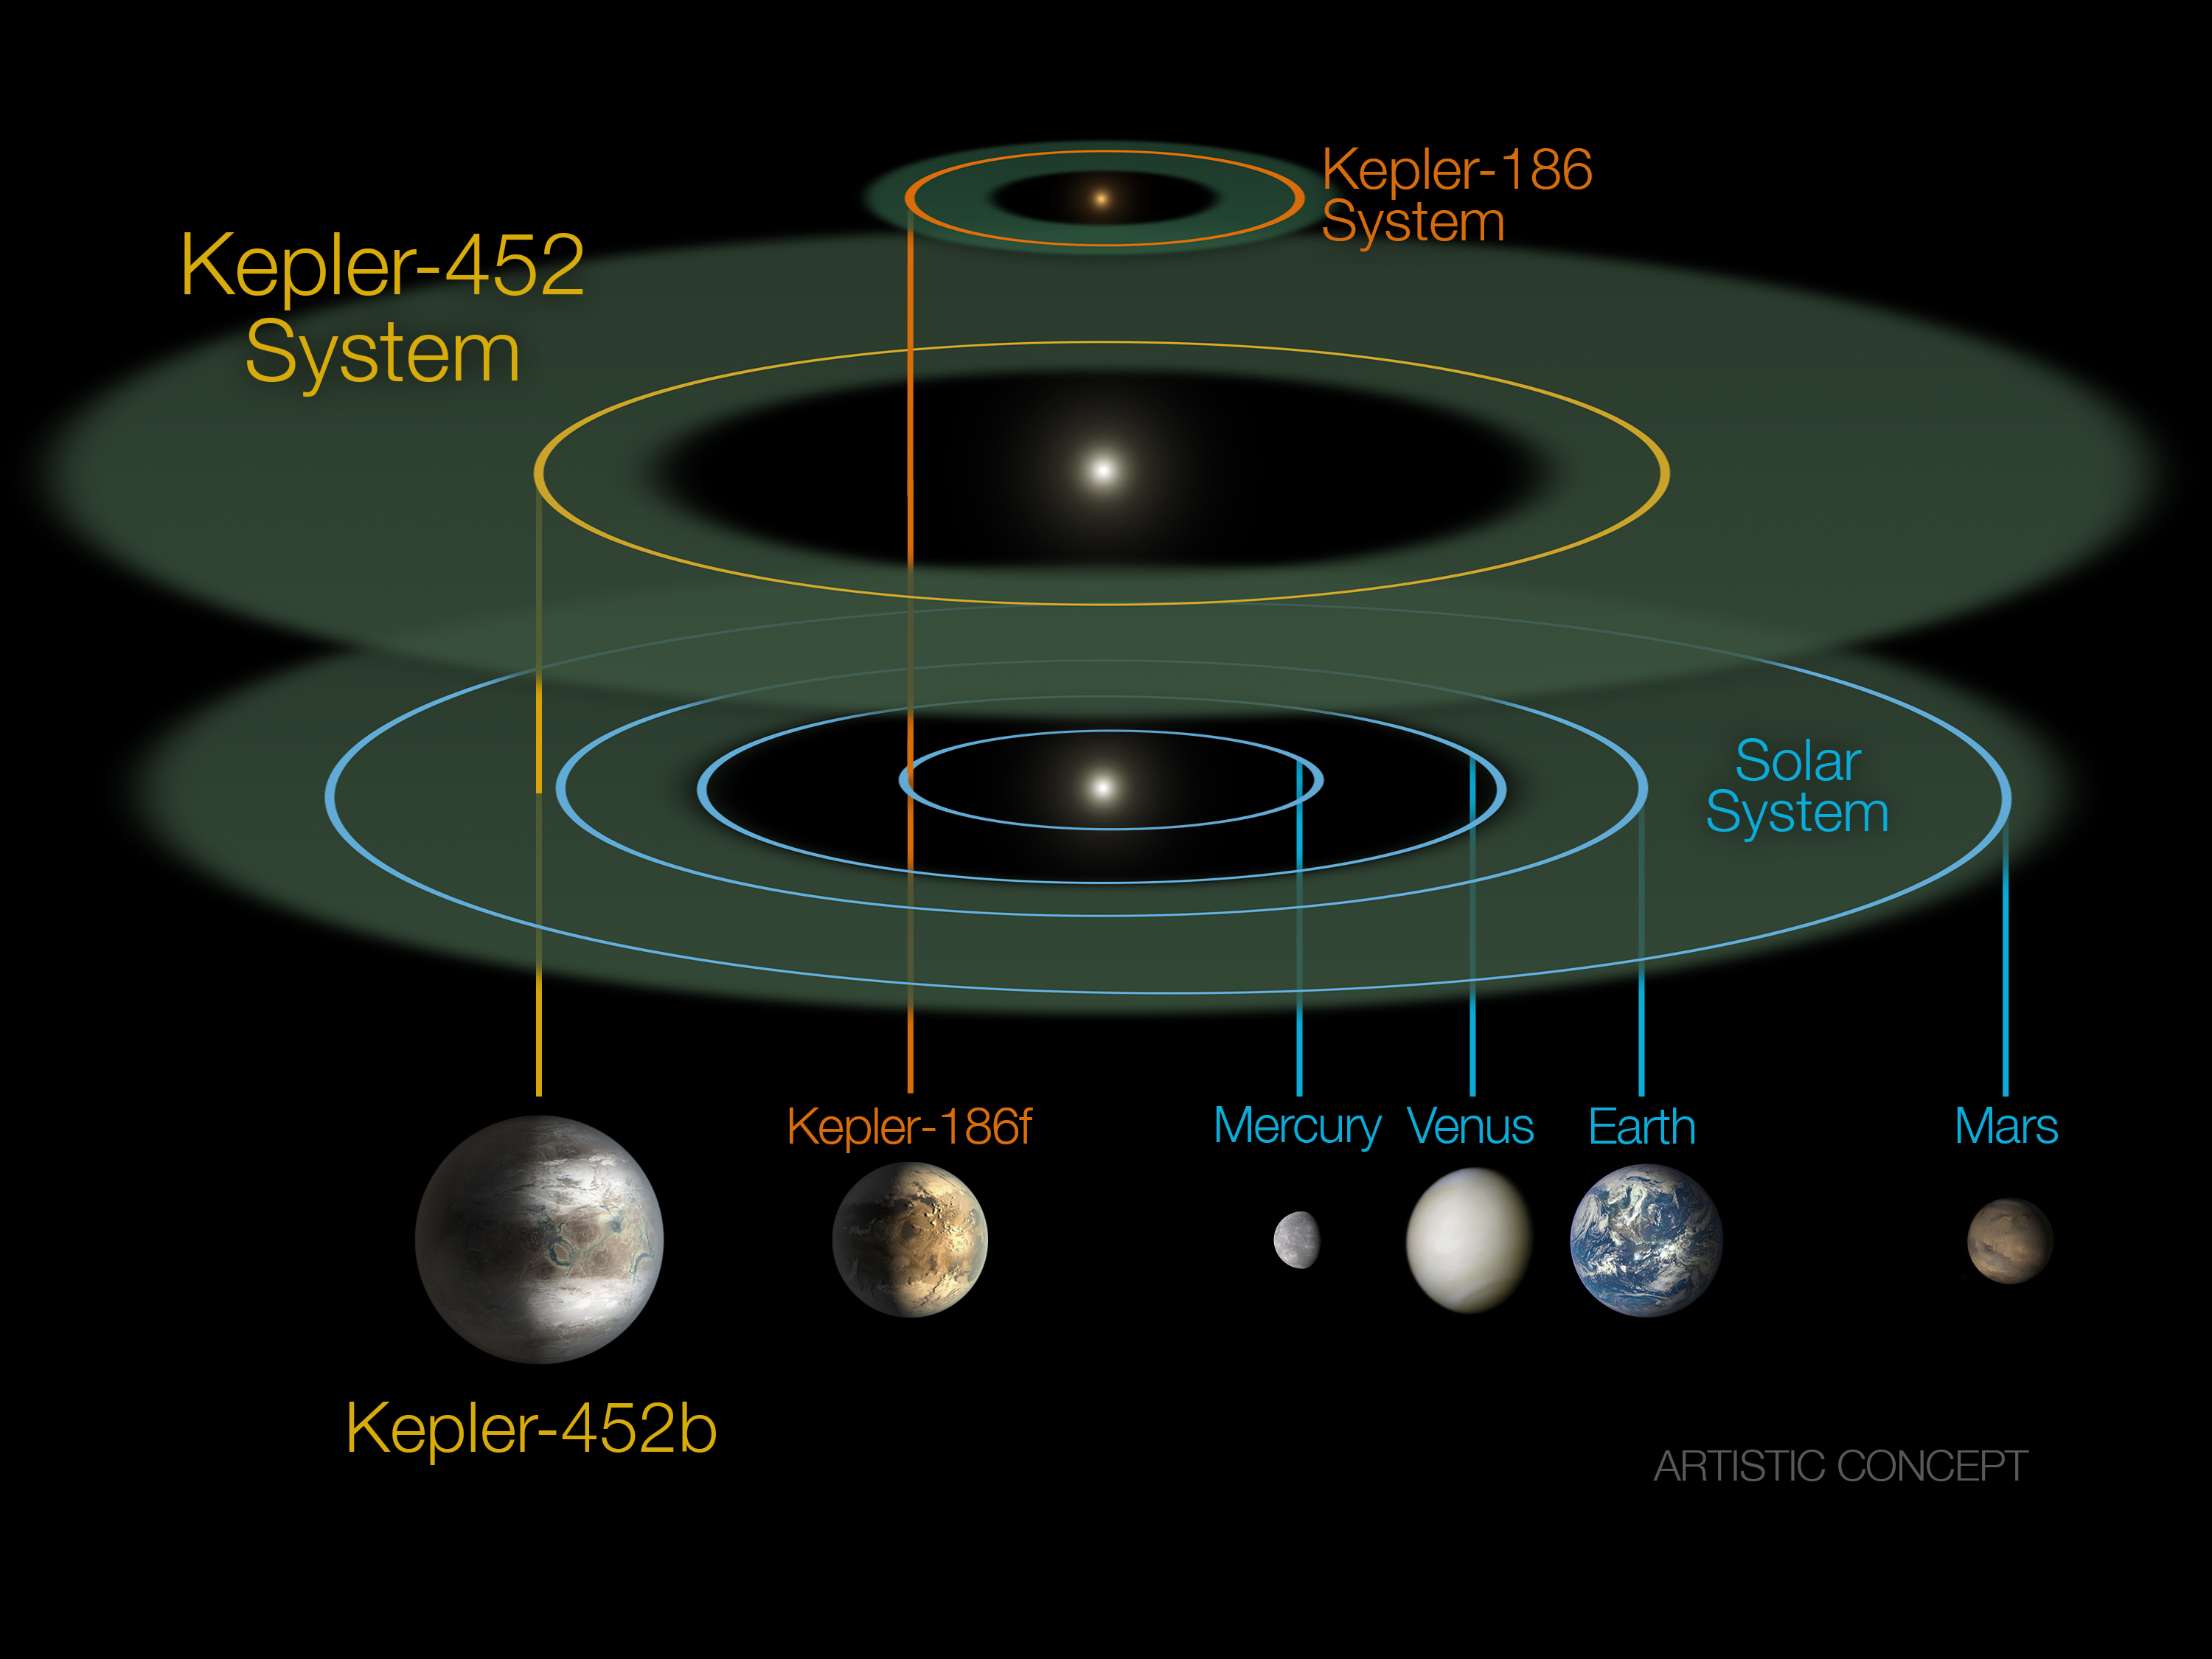 This size and scale of the Kepler-452 system compared alongside the Kepler-186 system and the solar system. Kepler-186 is a miniature solar system that would fit entirely inside the orbit of Mercury. The habitable zone of Kepler-186 is very small compared to that of Kepler-452 or the sun because it is a much smaller, cooler star. The size and extent of the habitable zone of Kepler-452 is nearly the same as that of the sun, but is slightly bigger because Kepler-452 is somewhat older, bigger and brighter. The size of the orbit of Kepler-452b is nearly the same as that of the Earth at 1.05 AU. Kepler-452b orbits its star once every 385 days. Credit: NASA/JPL-CalTech/R. Hurt